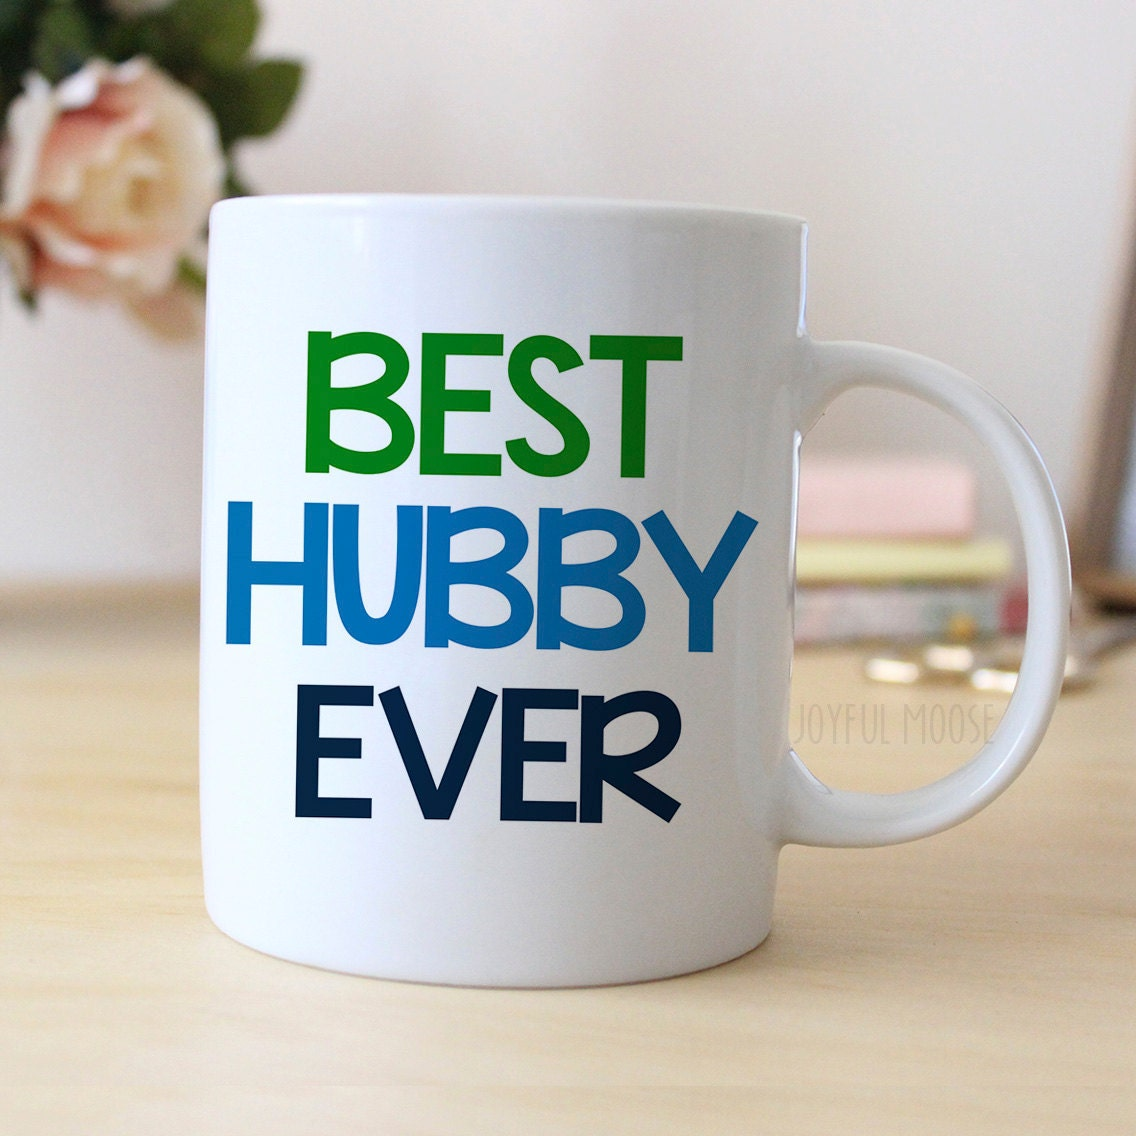 Best Hubby Ever Coffee Mug Husband Gift Coffee Mug For